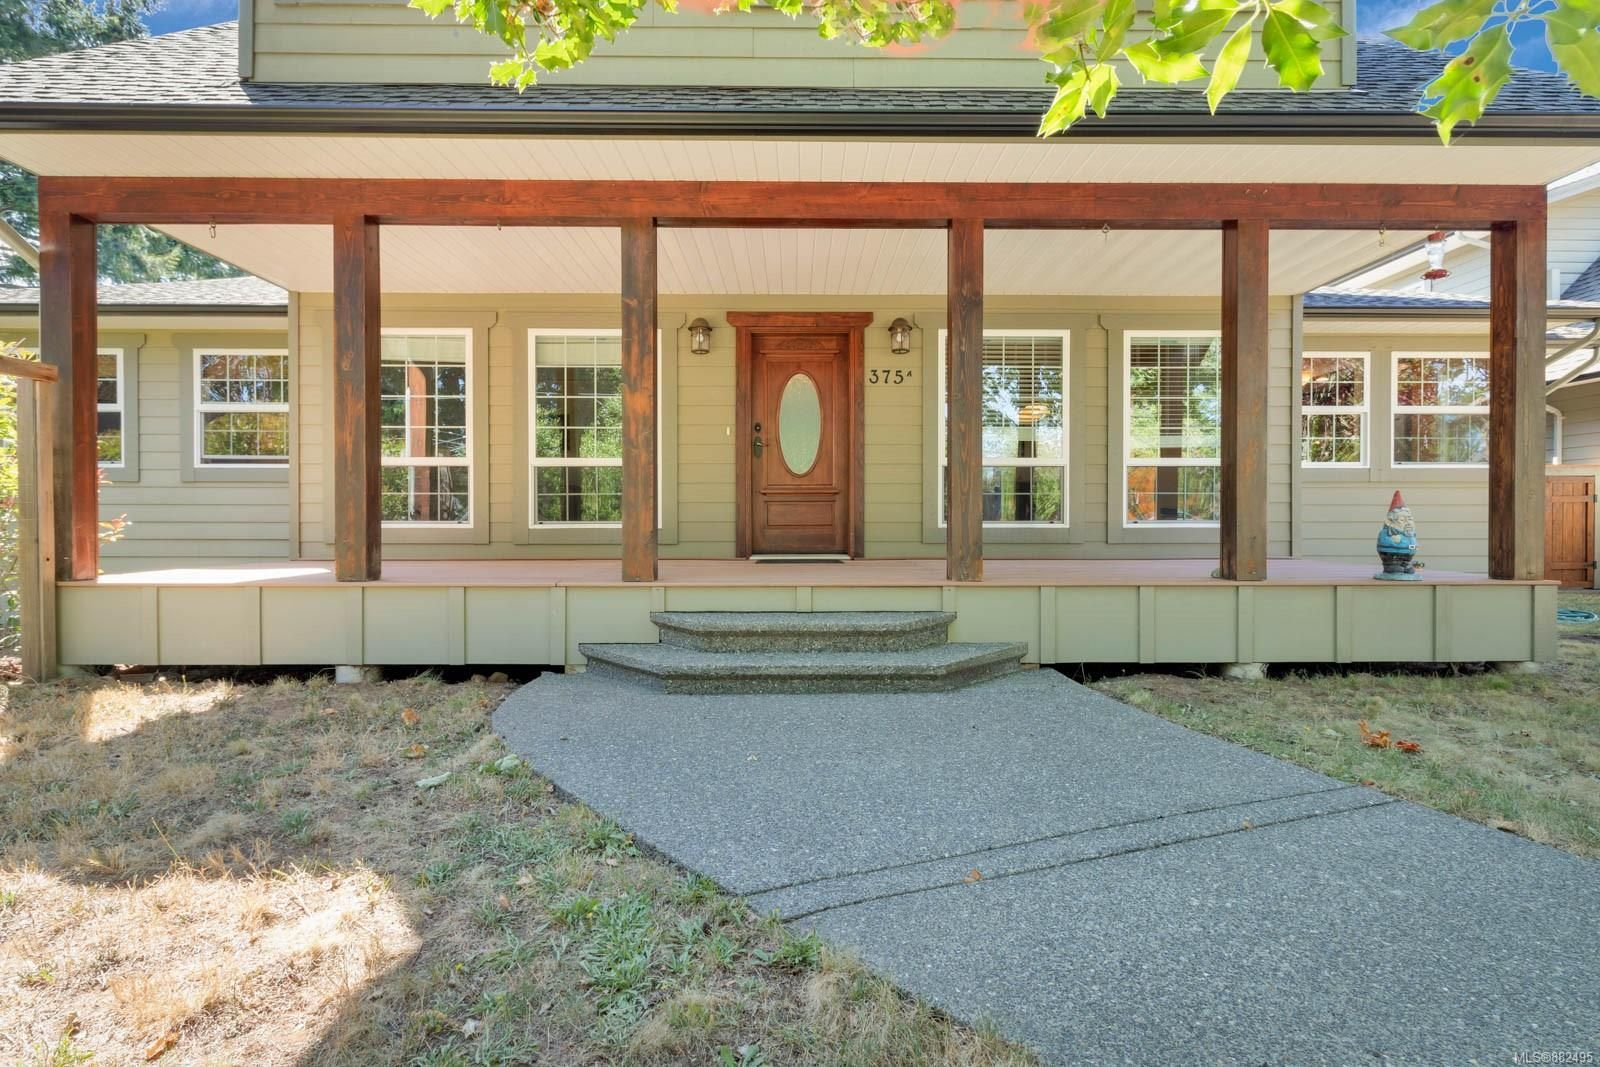 Photo 3: Photos: 375 Butchers Rd in : CV Comox (Town of) House for sale (Comox Valley)  : MLS®# 882495